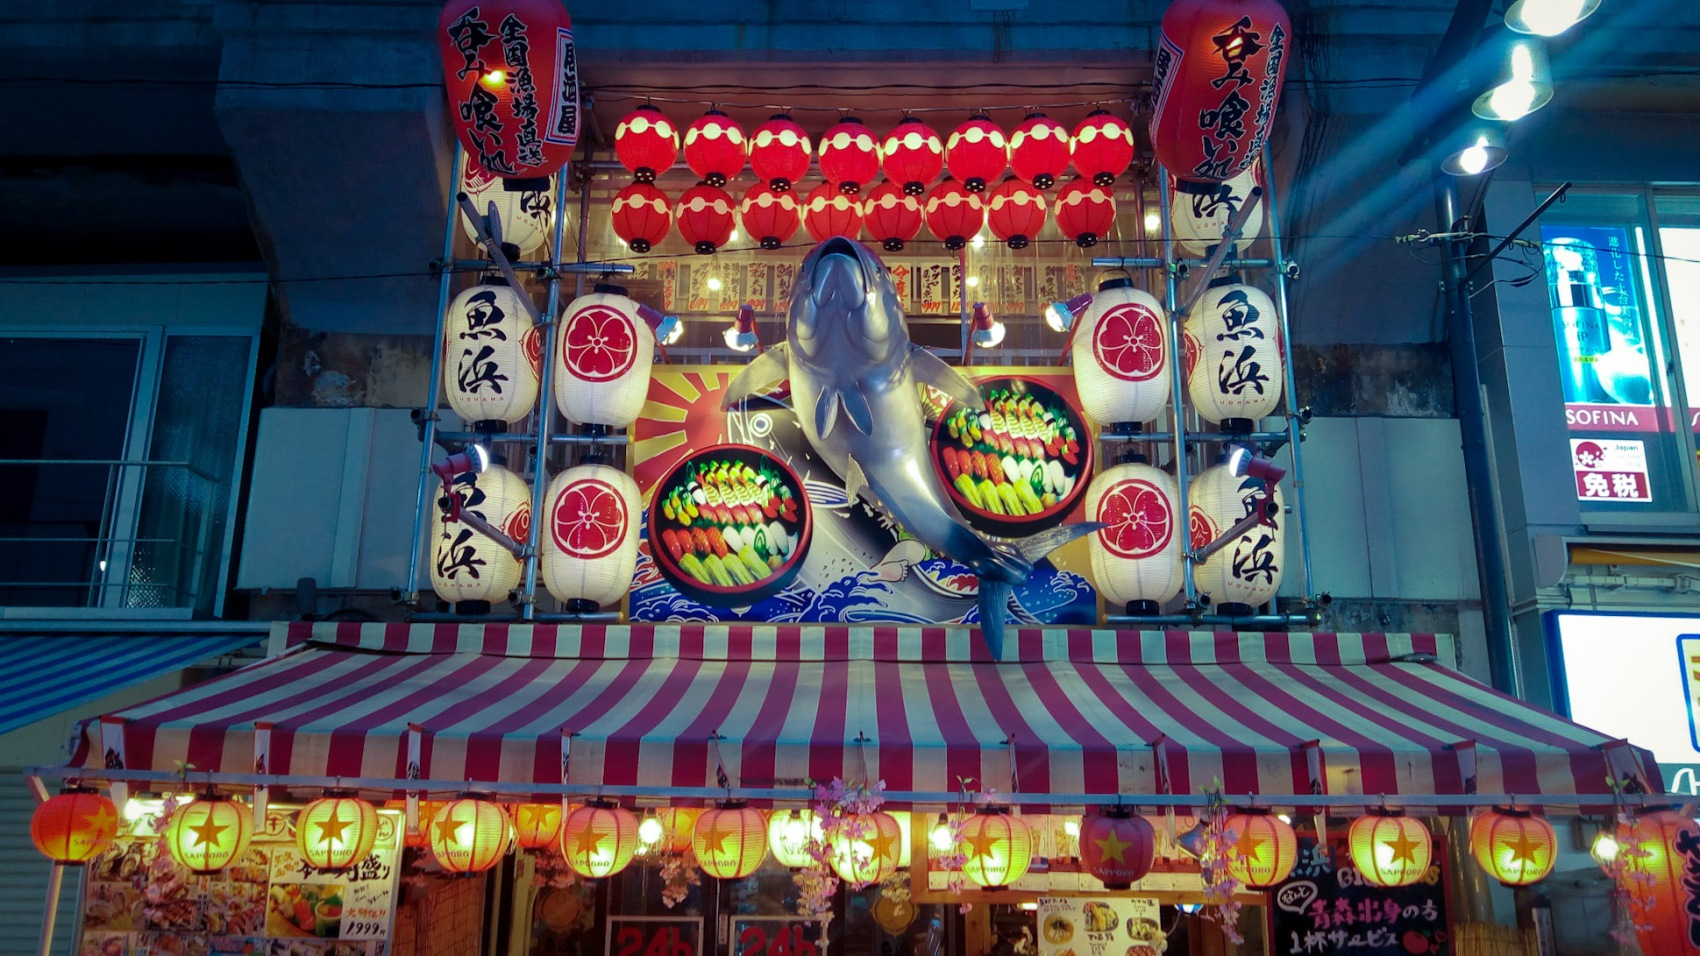 Urban Photos – Taito, Tokyo, Japan. 'Ameya-Yokocho.' Complete image from my latest travel art blog article 'Sakura Japan.' Now online - sketchbookexplorer.com @davidasutton @sketchbookexplorer Facebook.com/davidanthonysutton #photography #japan #tokyo #sakura #ameyayokocho #sushi #travel #travelblog #cherryblossom #cherryblossomseason #cherryblossomjapan